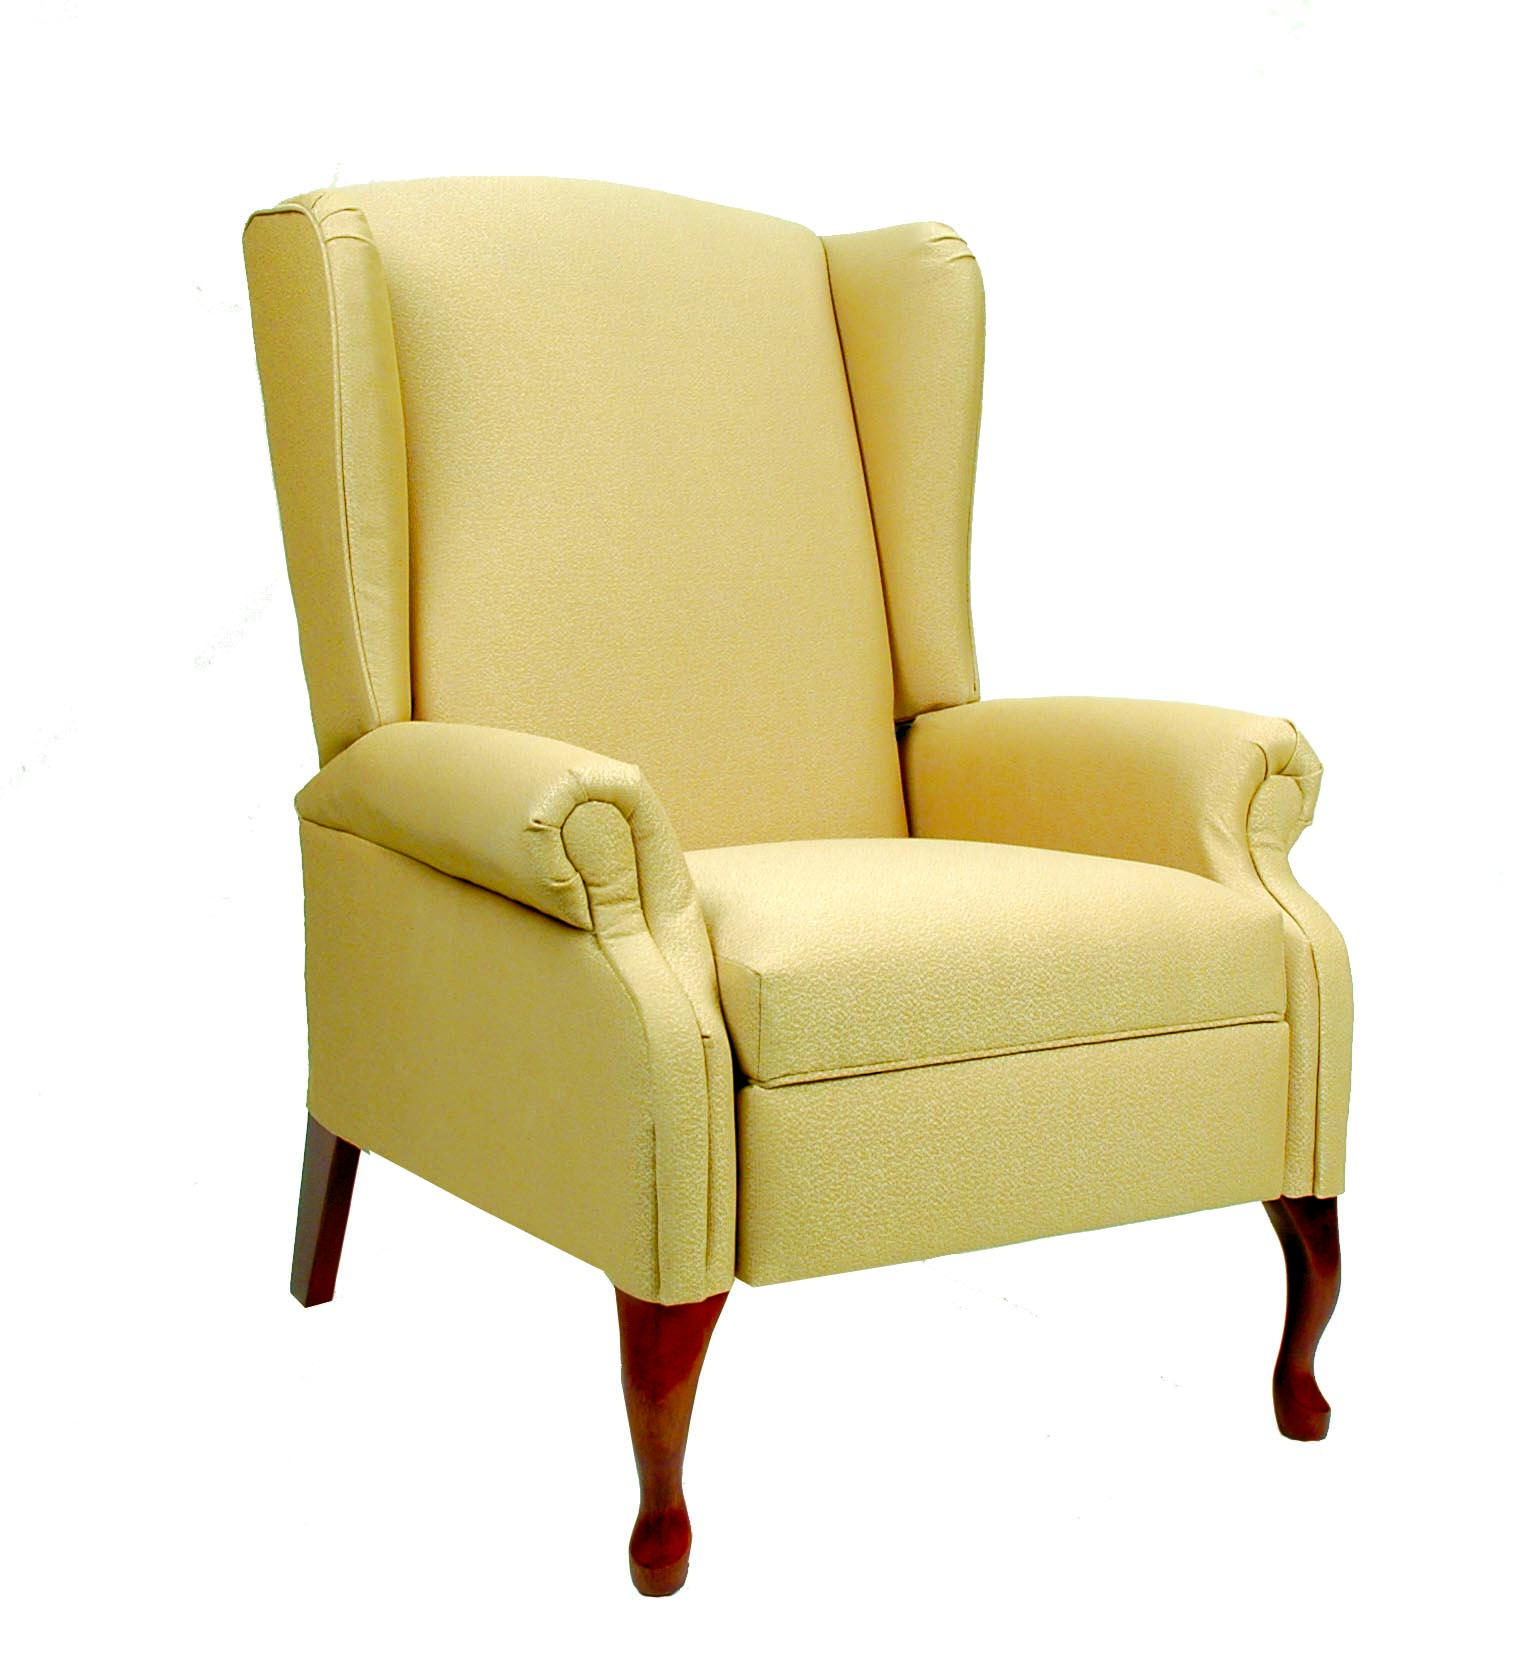 queen anne wing chair recliner office covers online india health care furniture inc